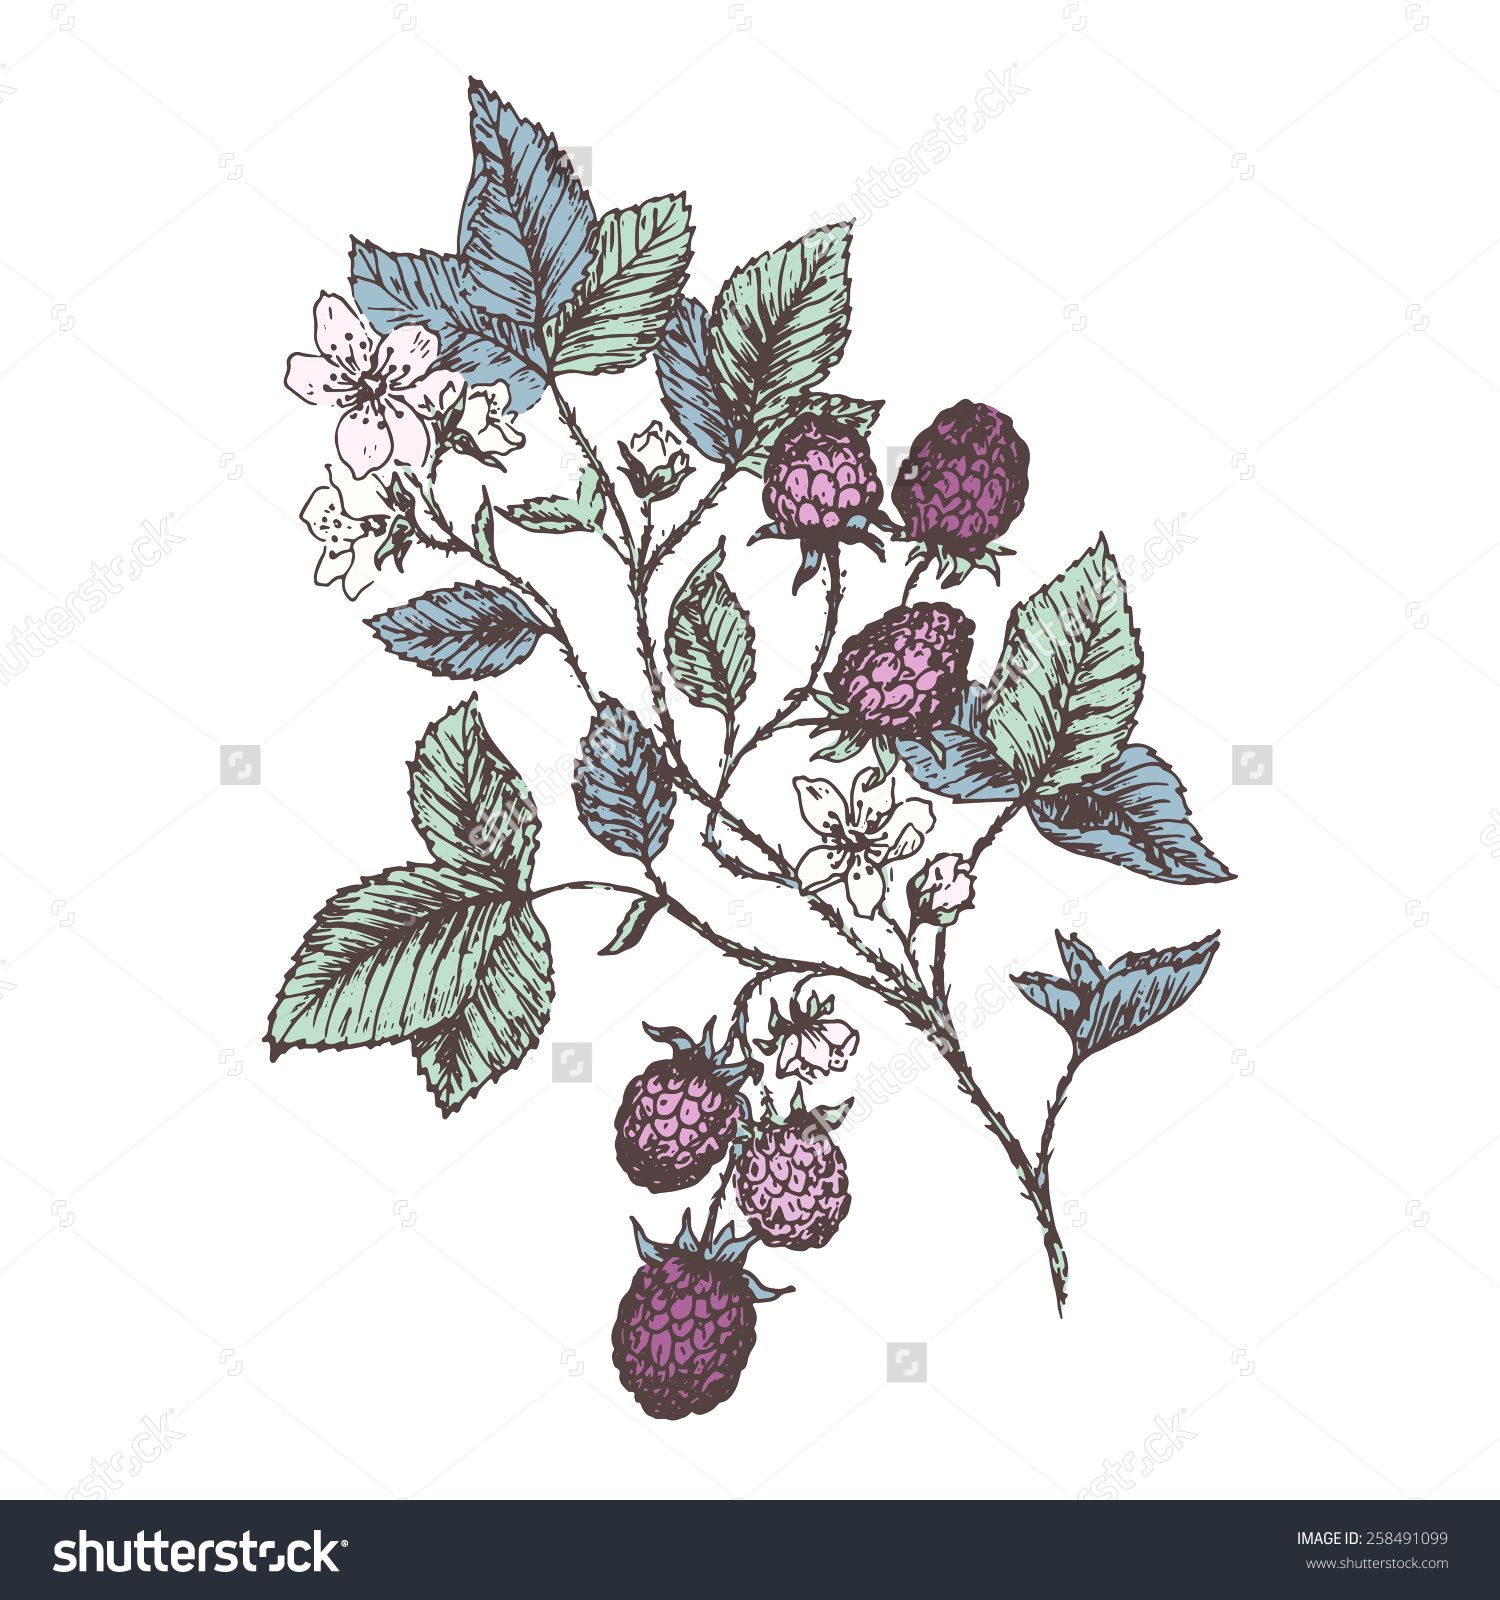 image result for botanical drawing strawberry flower